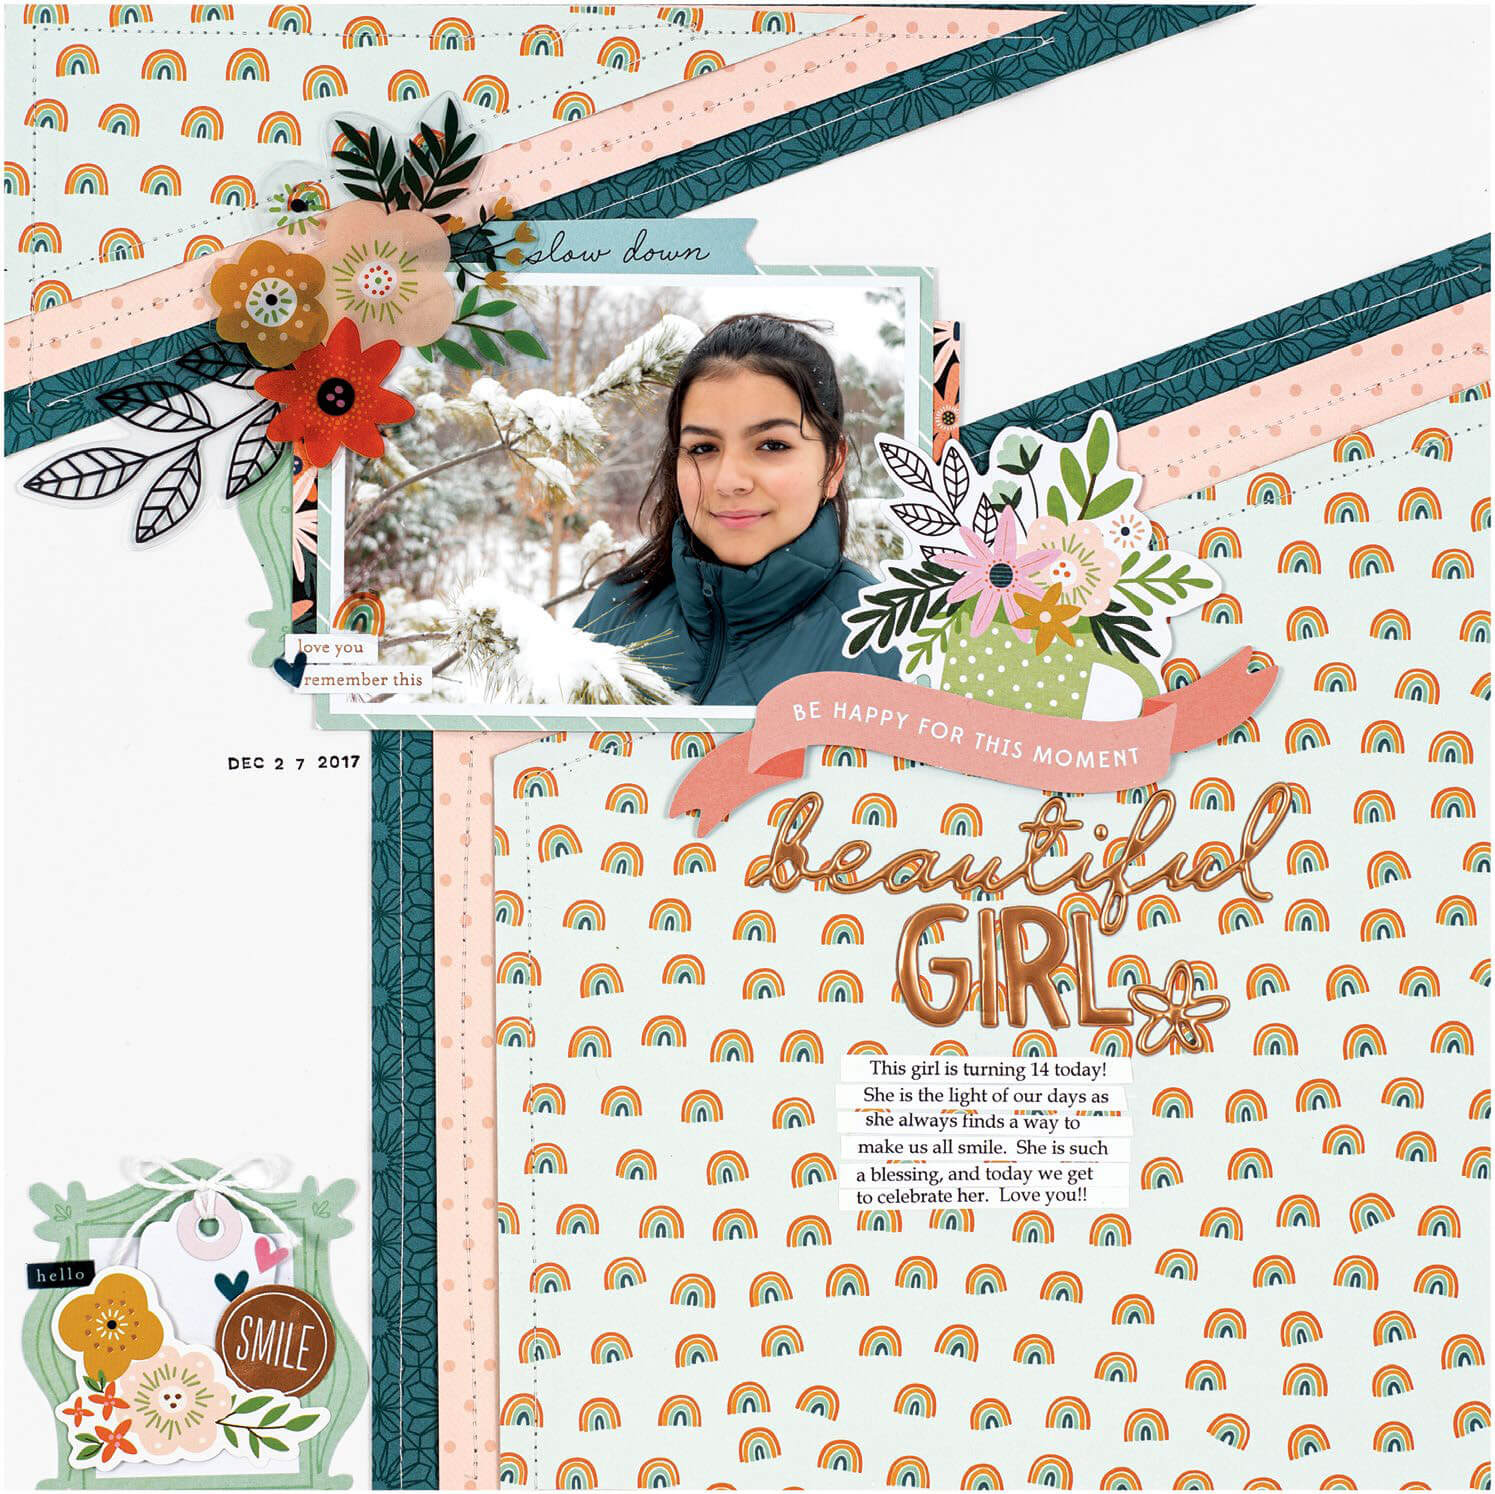 Scrapbook & Cards Today - Winter 2019 - Beautiful Girl layout by Nathalie Desousa